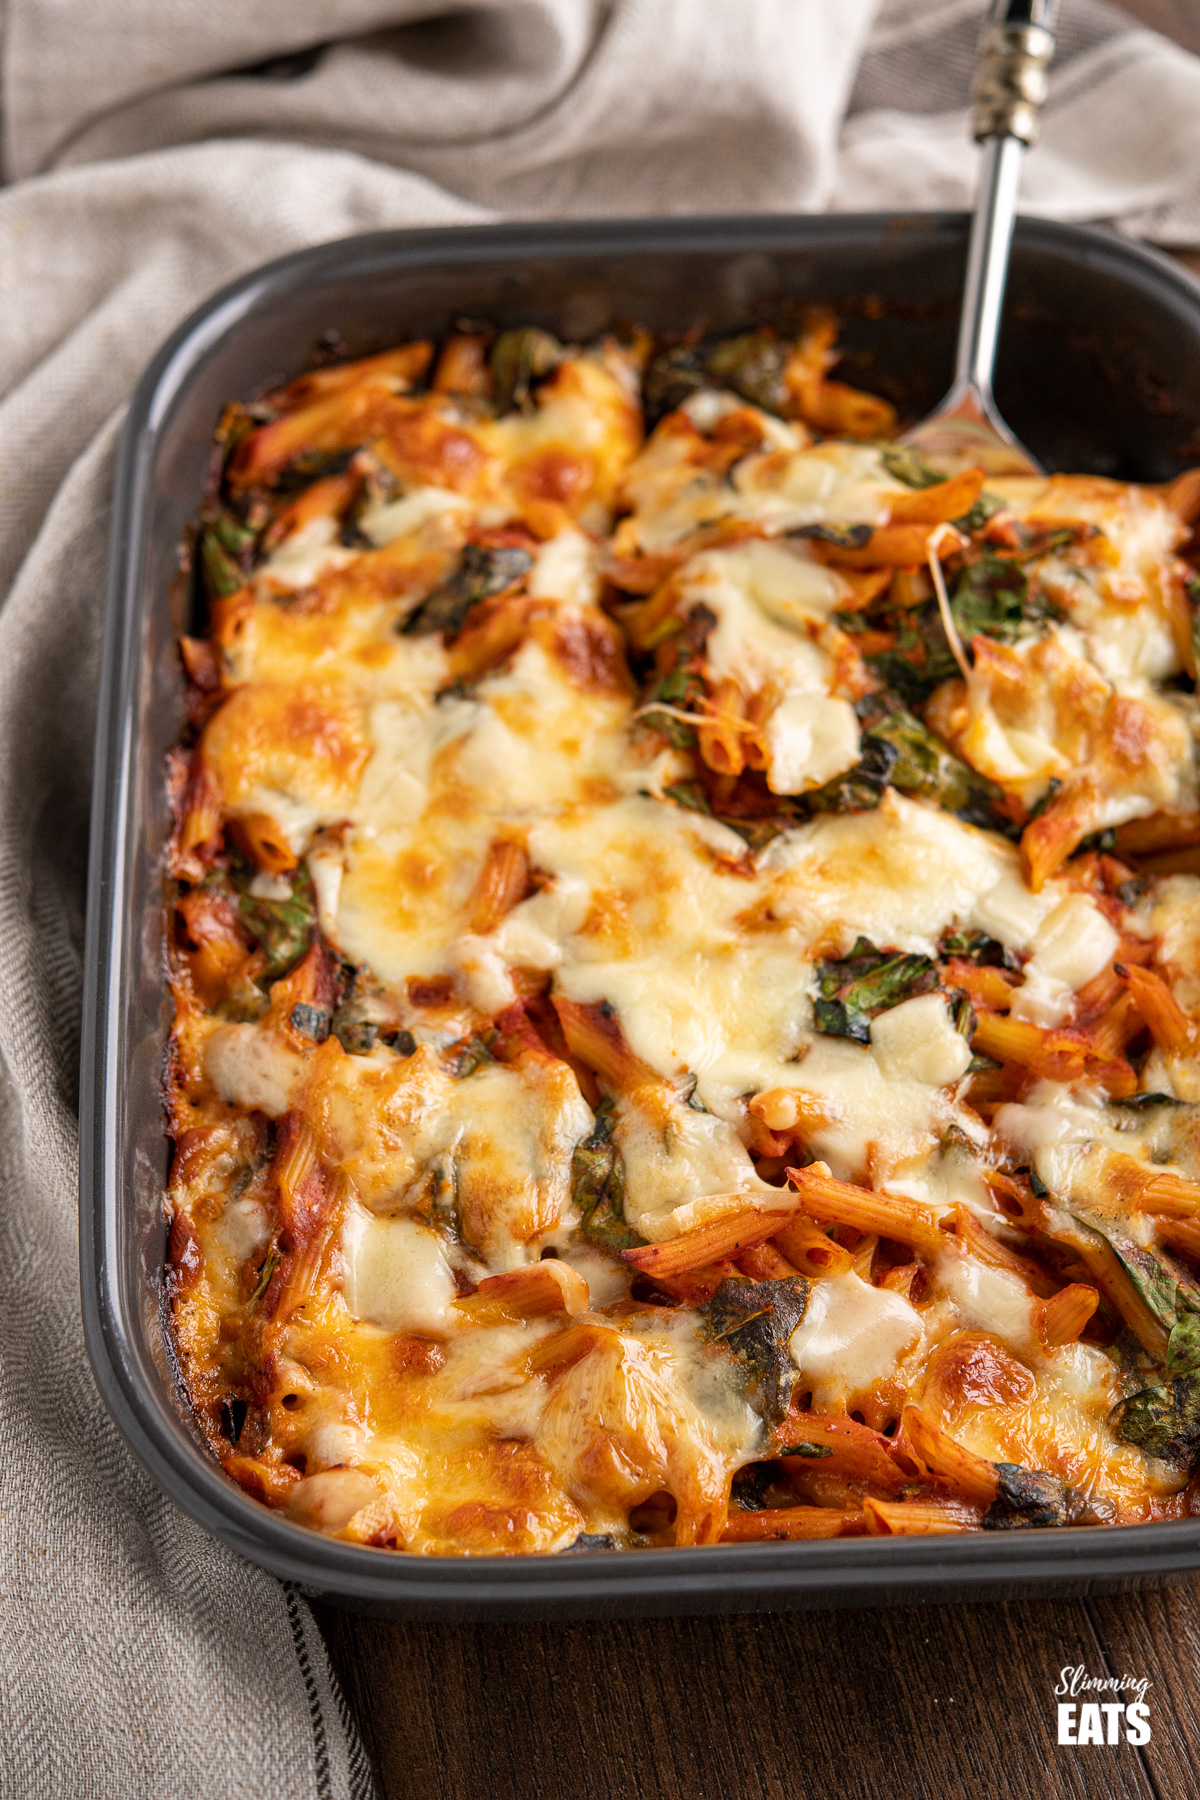 spinach pasta bake with spoon in dark grey oven dish